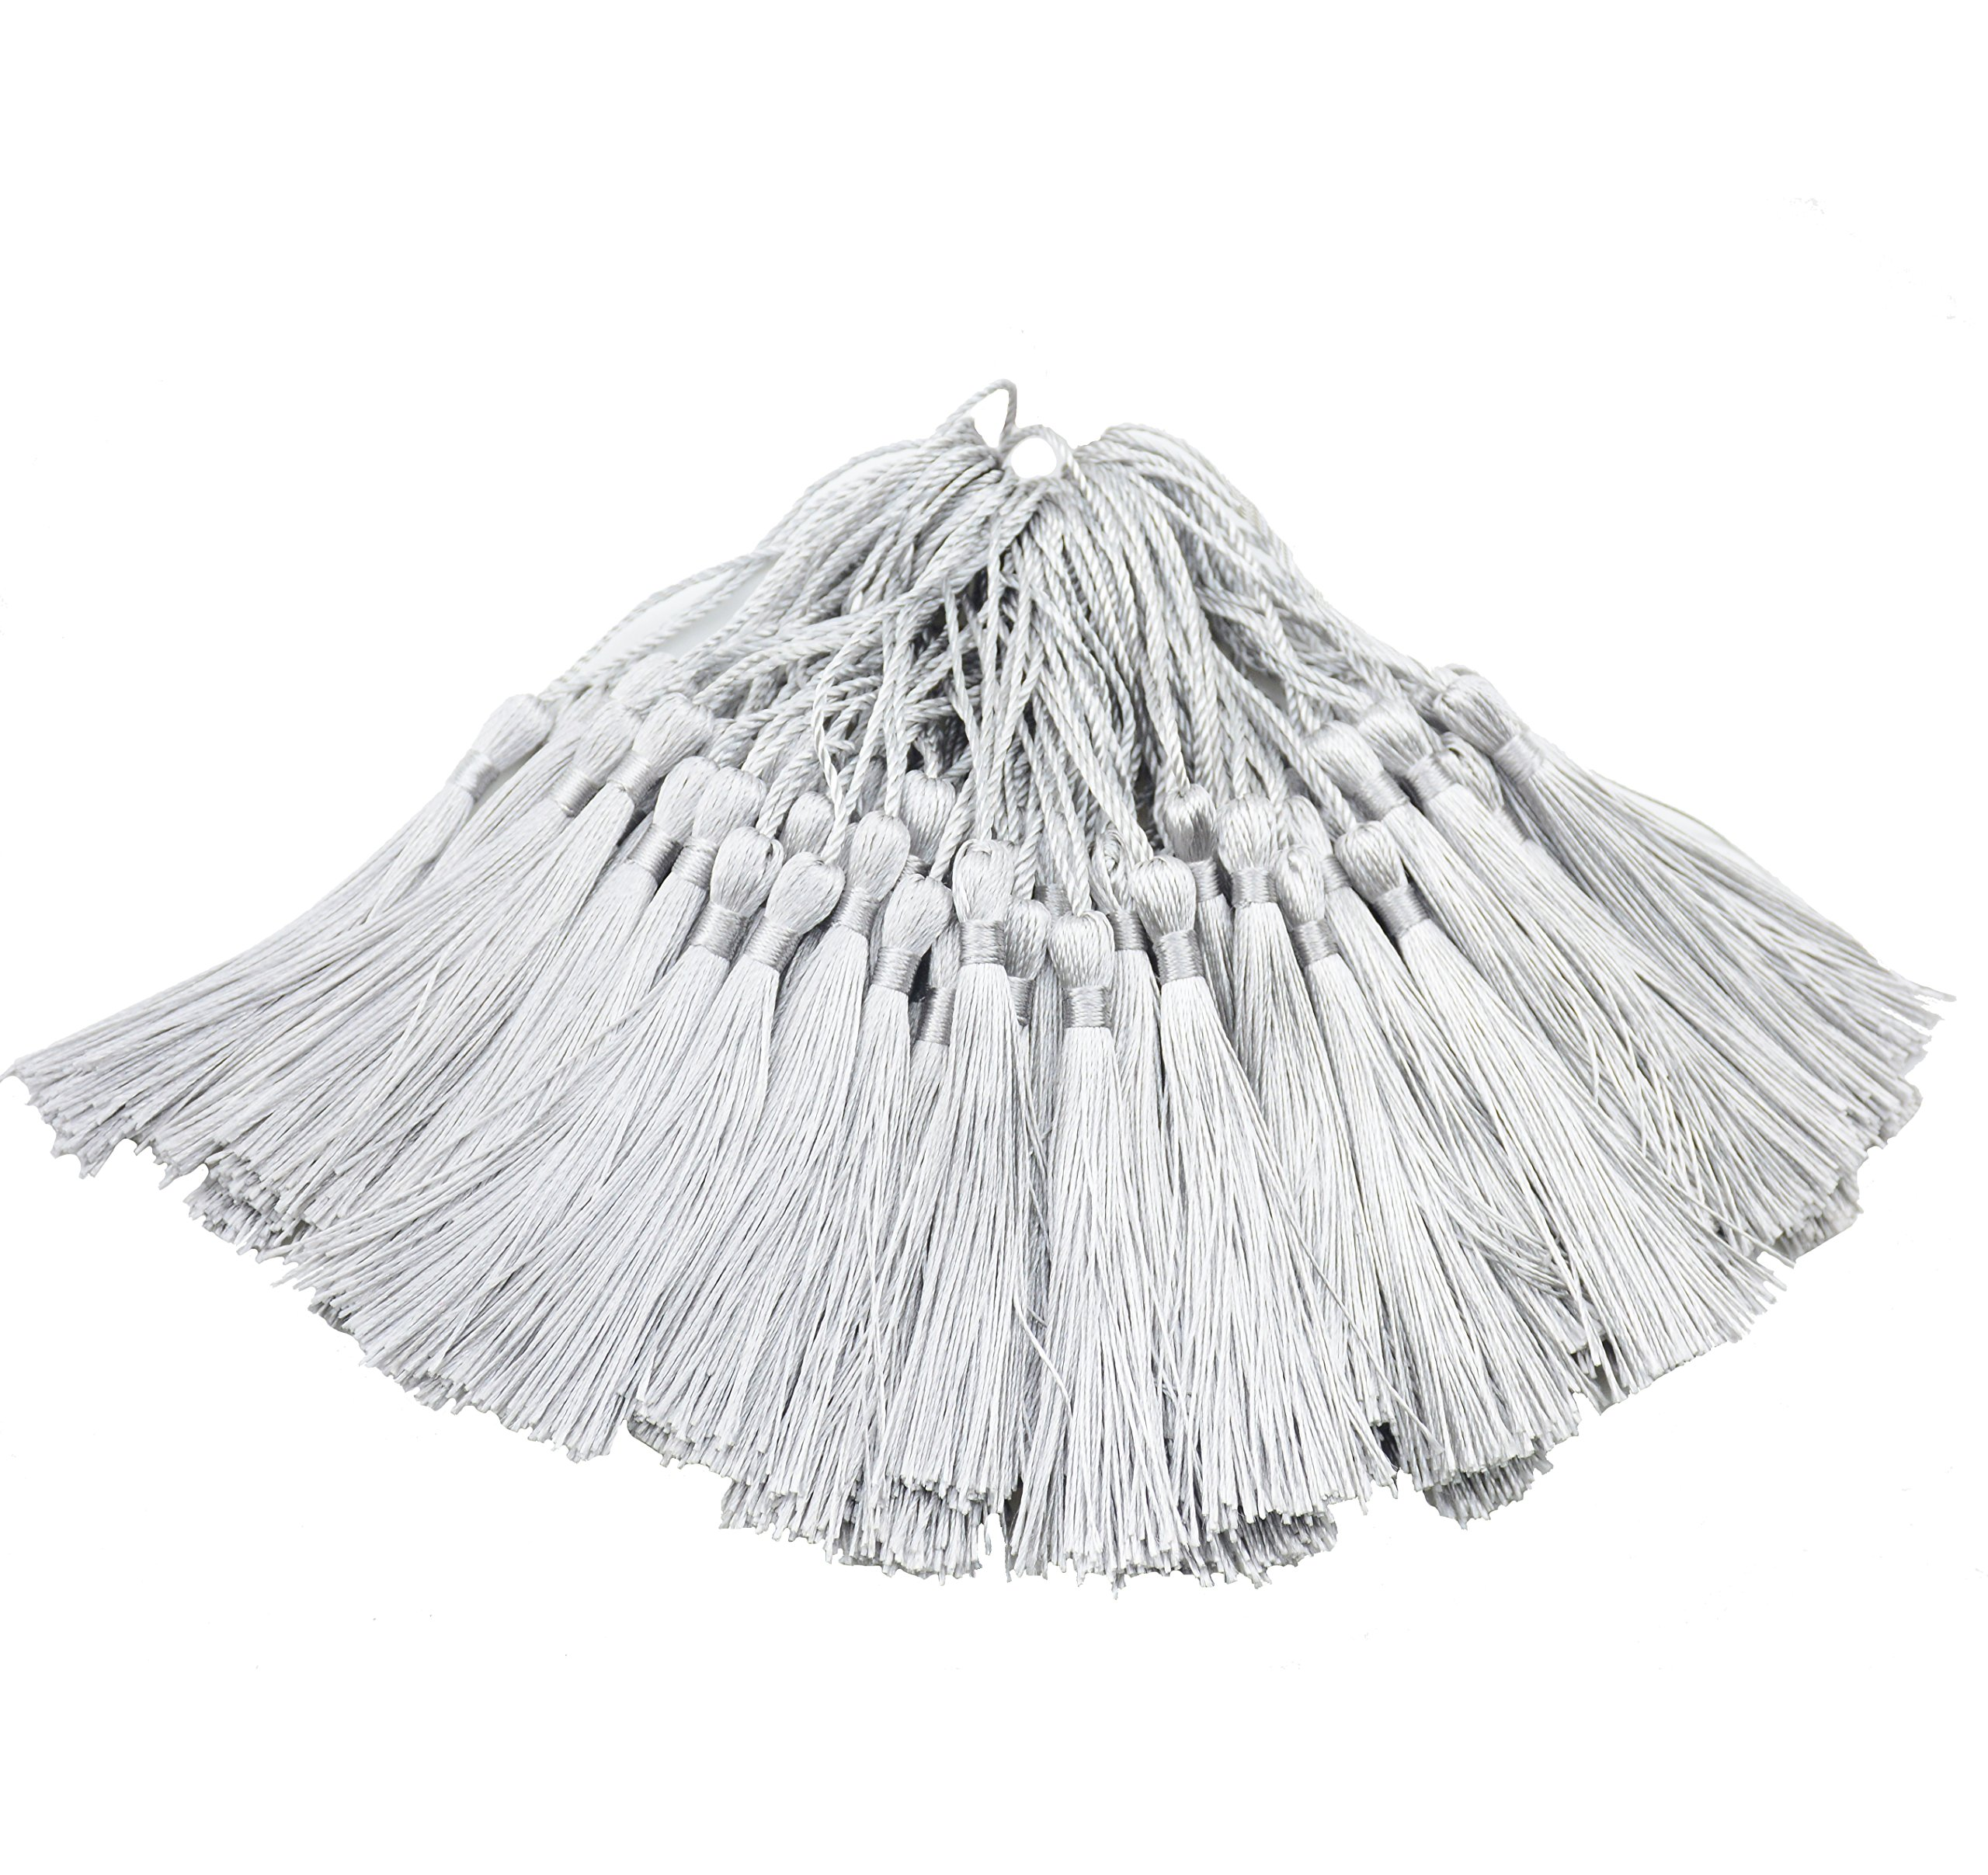 100pcs 13cm/5 Inch Silky Floss Bookmark Tassels with 2-Inch Cord Loop and Small Chinese Knot for Jewelry Making, Souvenir, Bookmarks, DIY Craft Accessory (Silver)